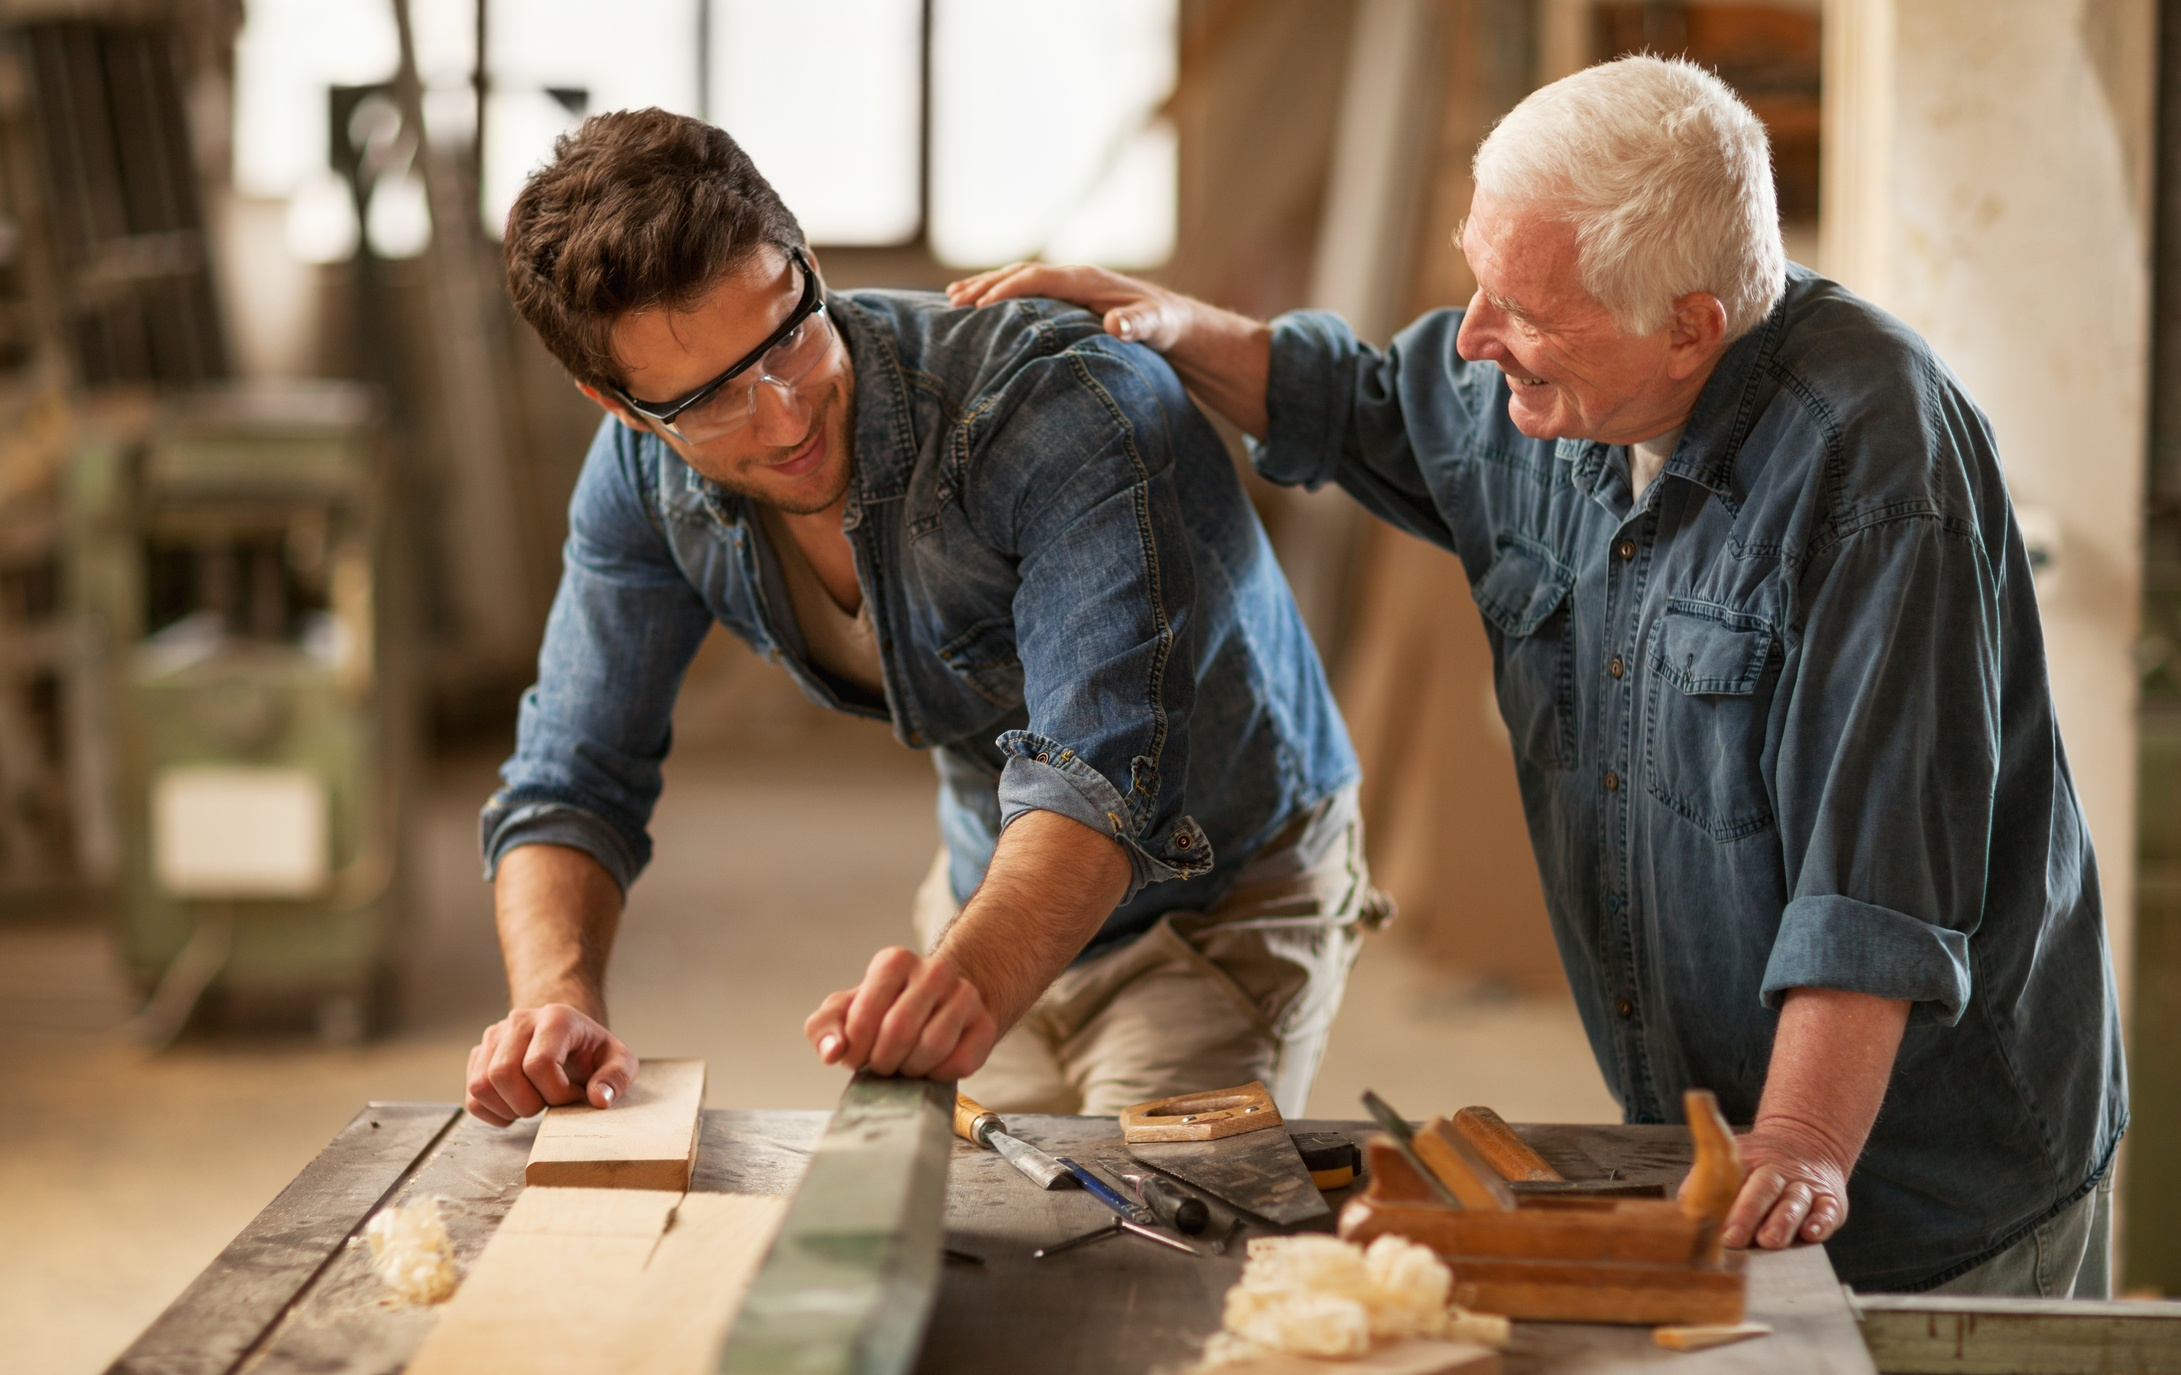 Photo-of-a-senior-carpenter-and-apprentice-at-work-180827934_2182x1376.jpeg